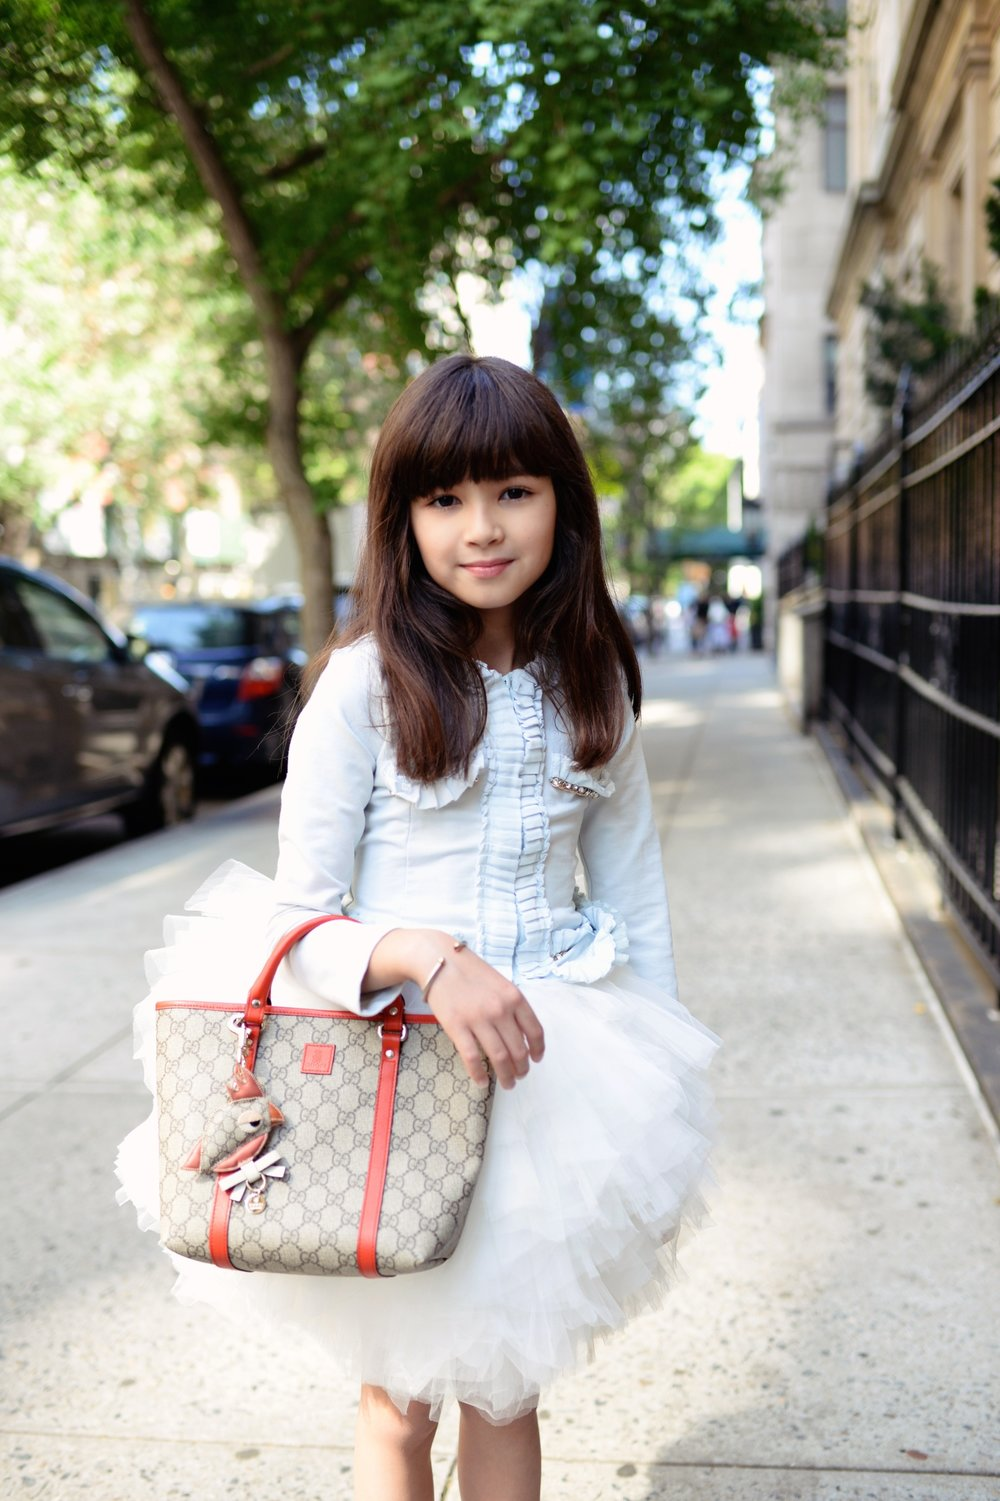 Enfant+Street+Style+by+Gina+Kim+Photography-71.jpeg